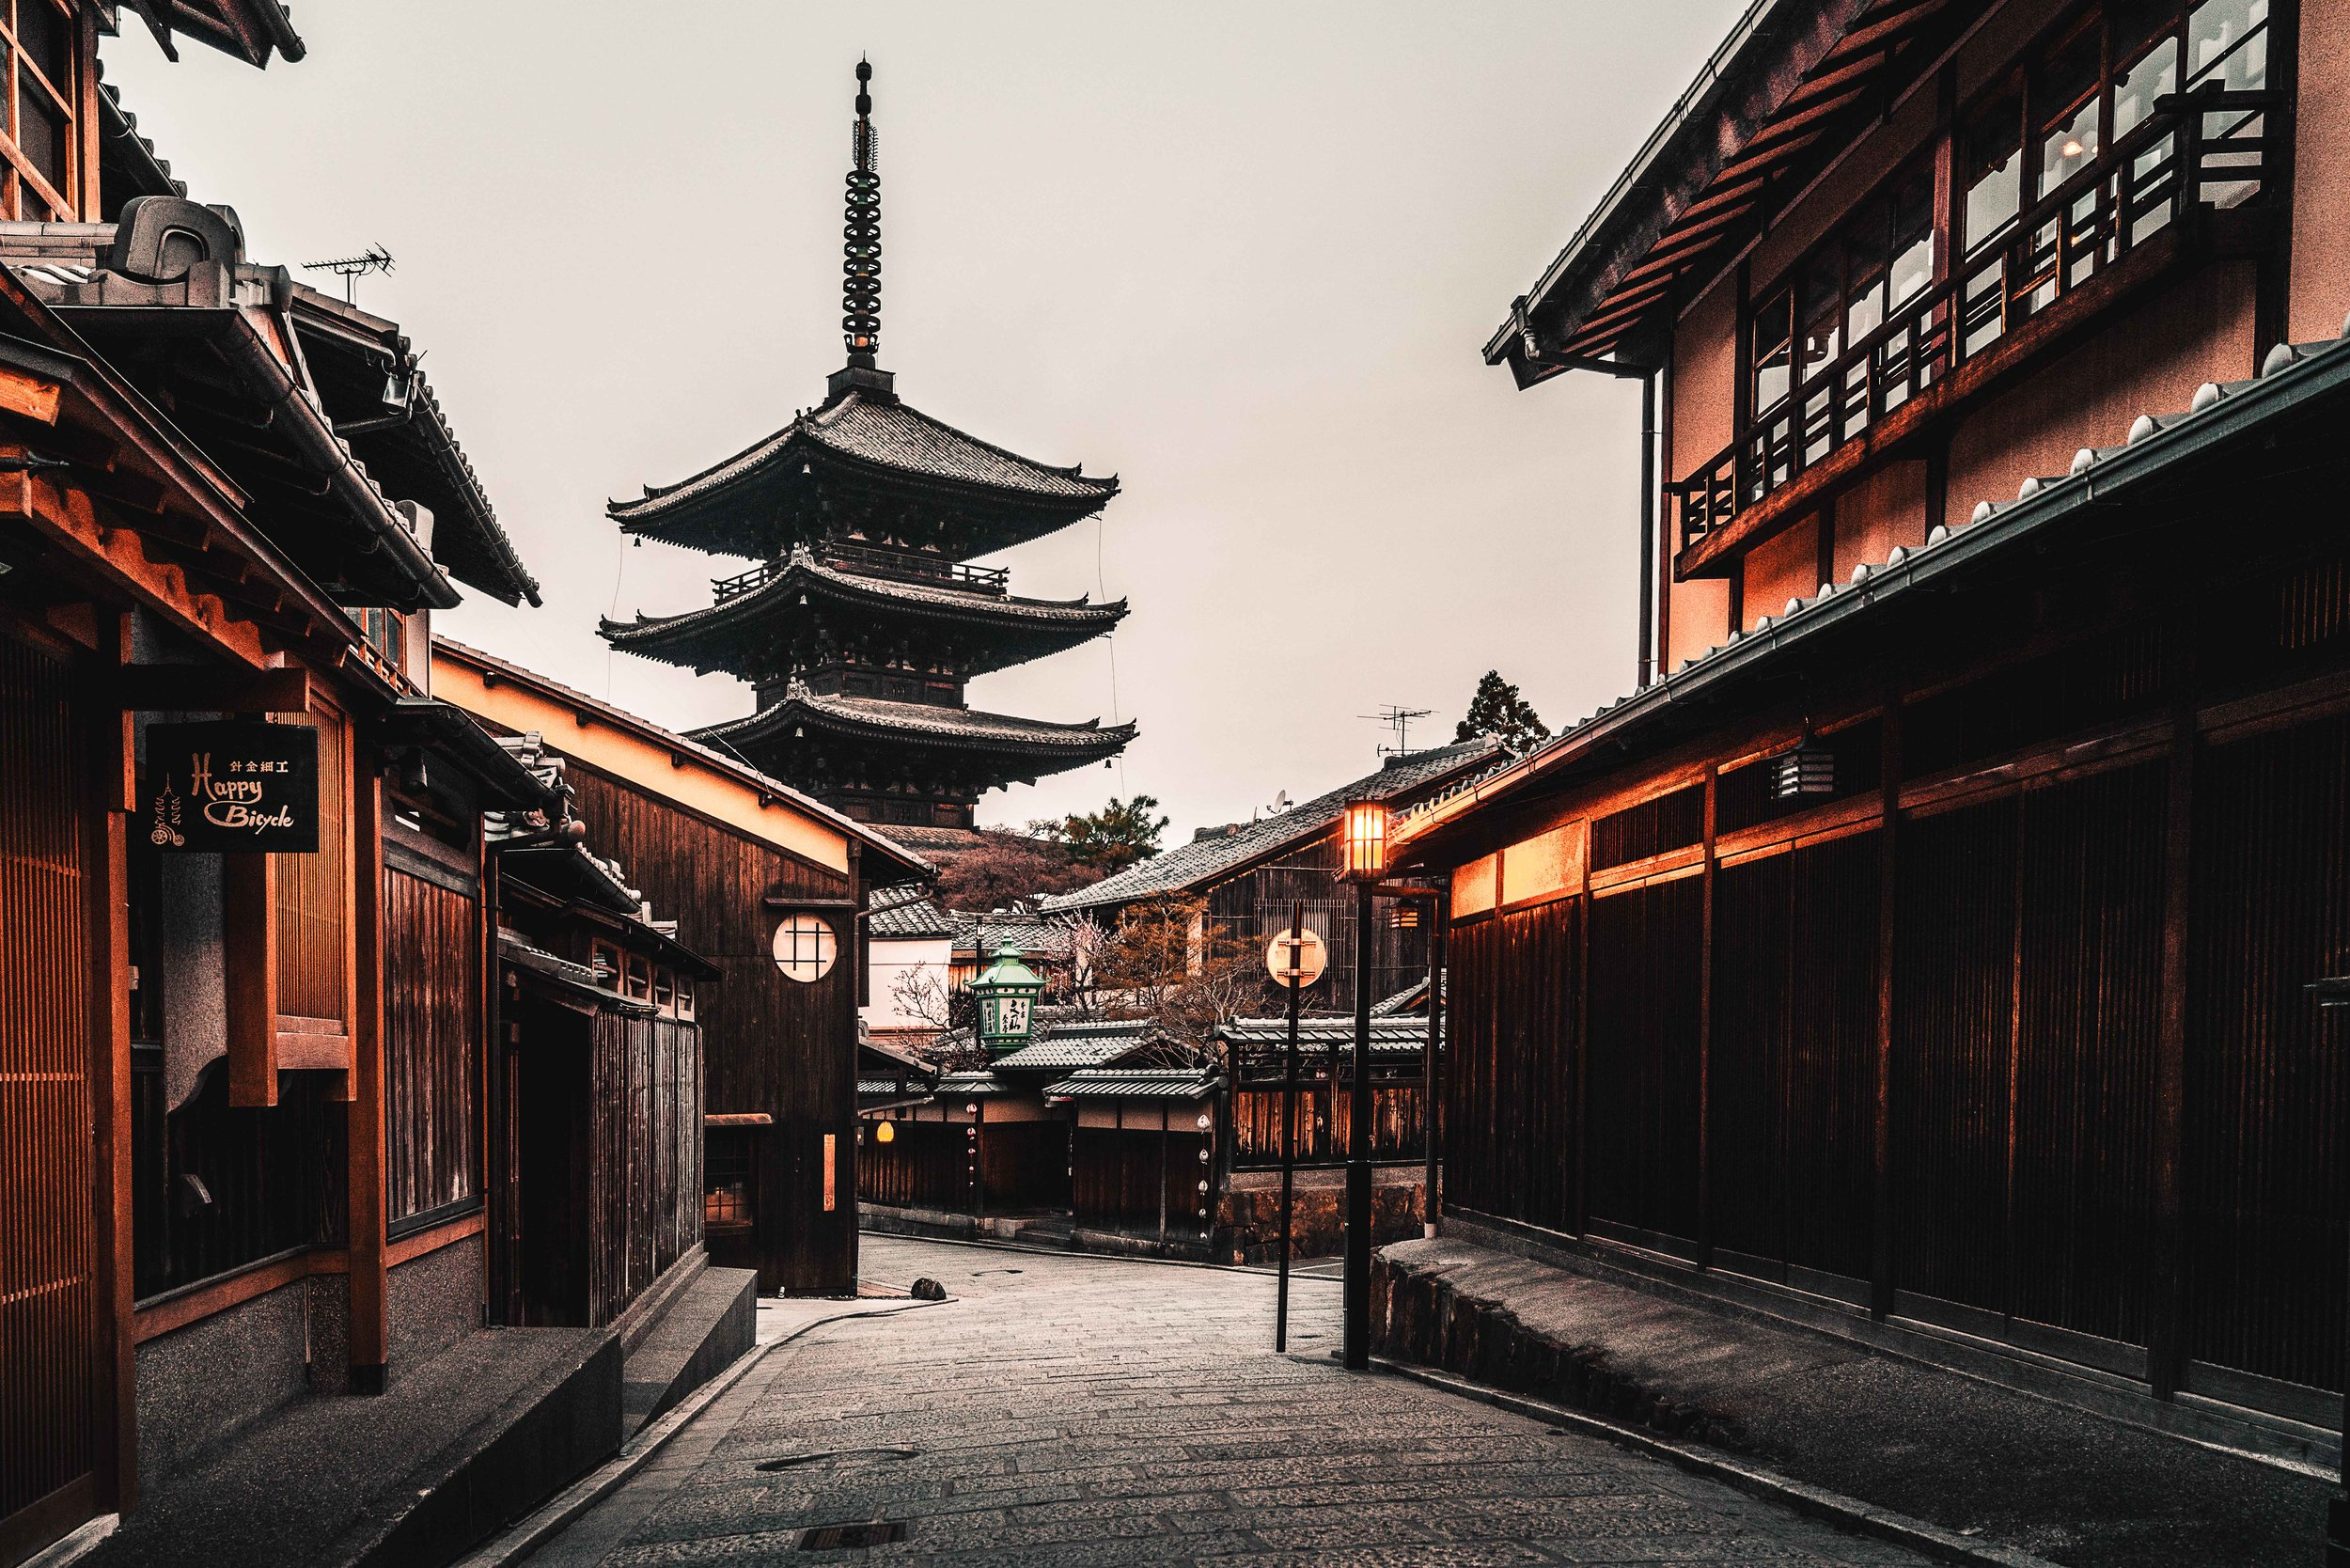 Kyoto, Japan   Theres no other way to see the sights of Kyoto other than the early morning before the crowds. Truely a magical place.